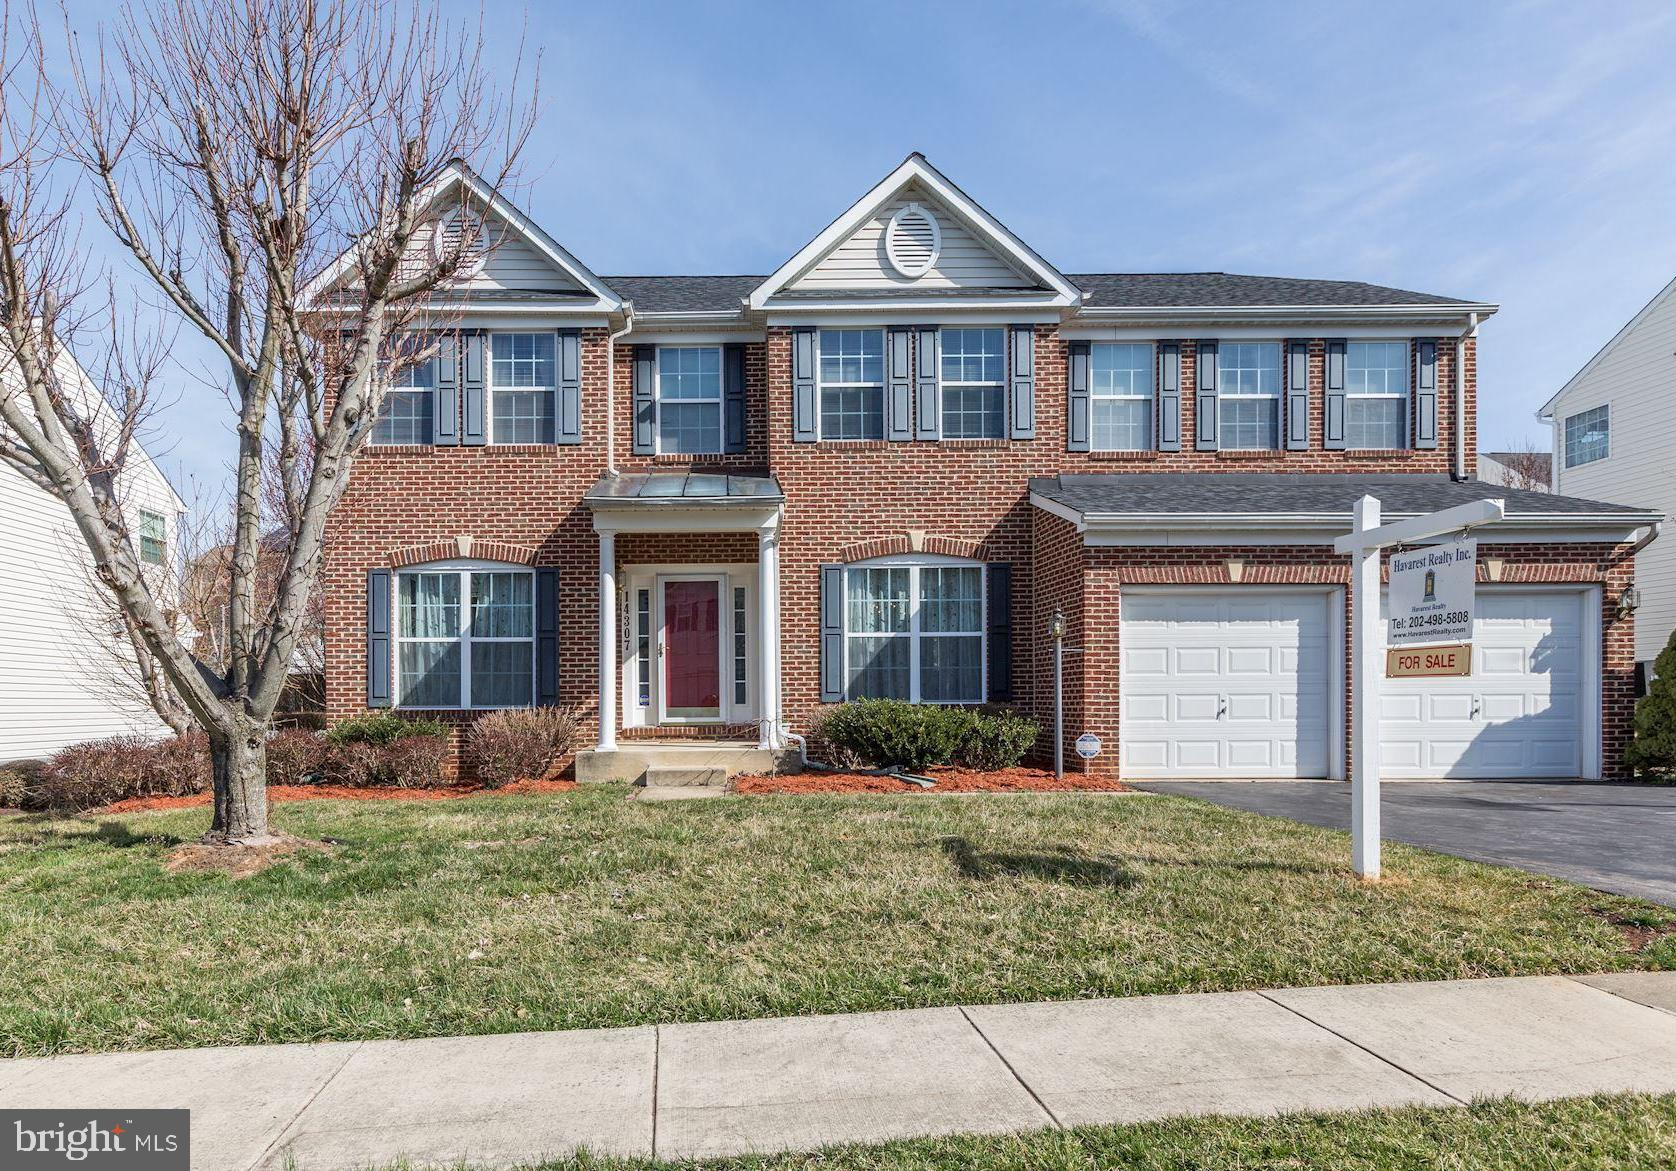 14307 AUTUMN GOLD ROAD, BOYDS, MD 20841